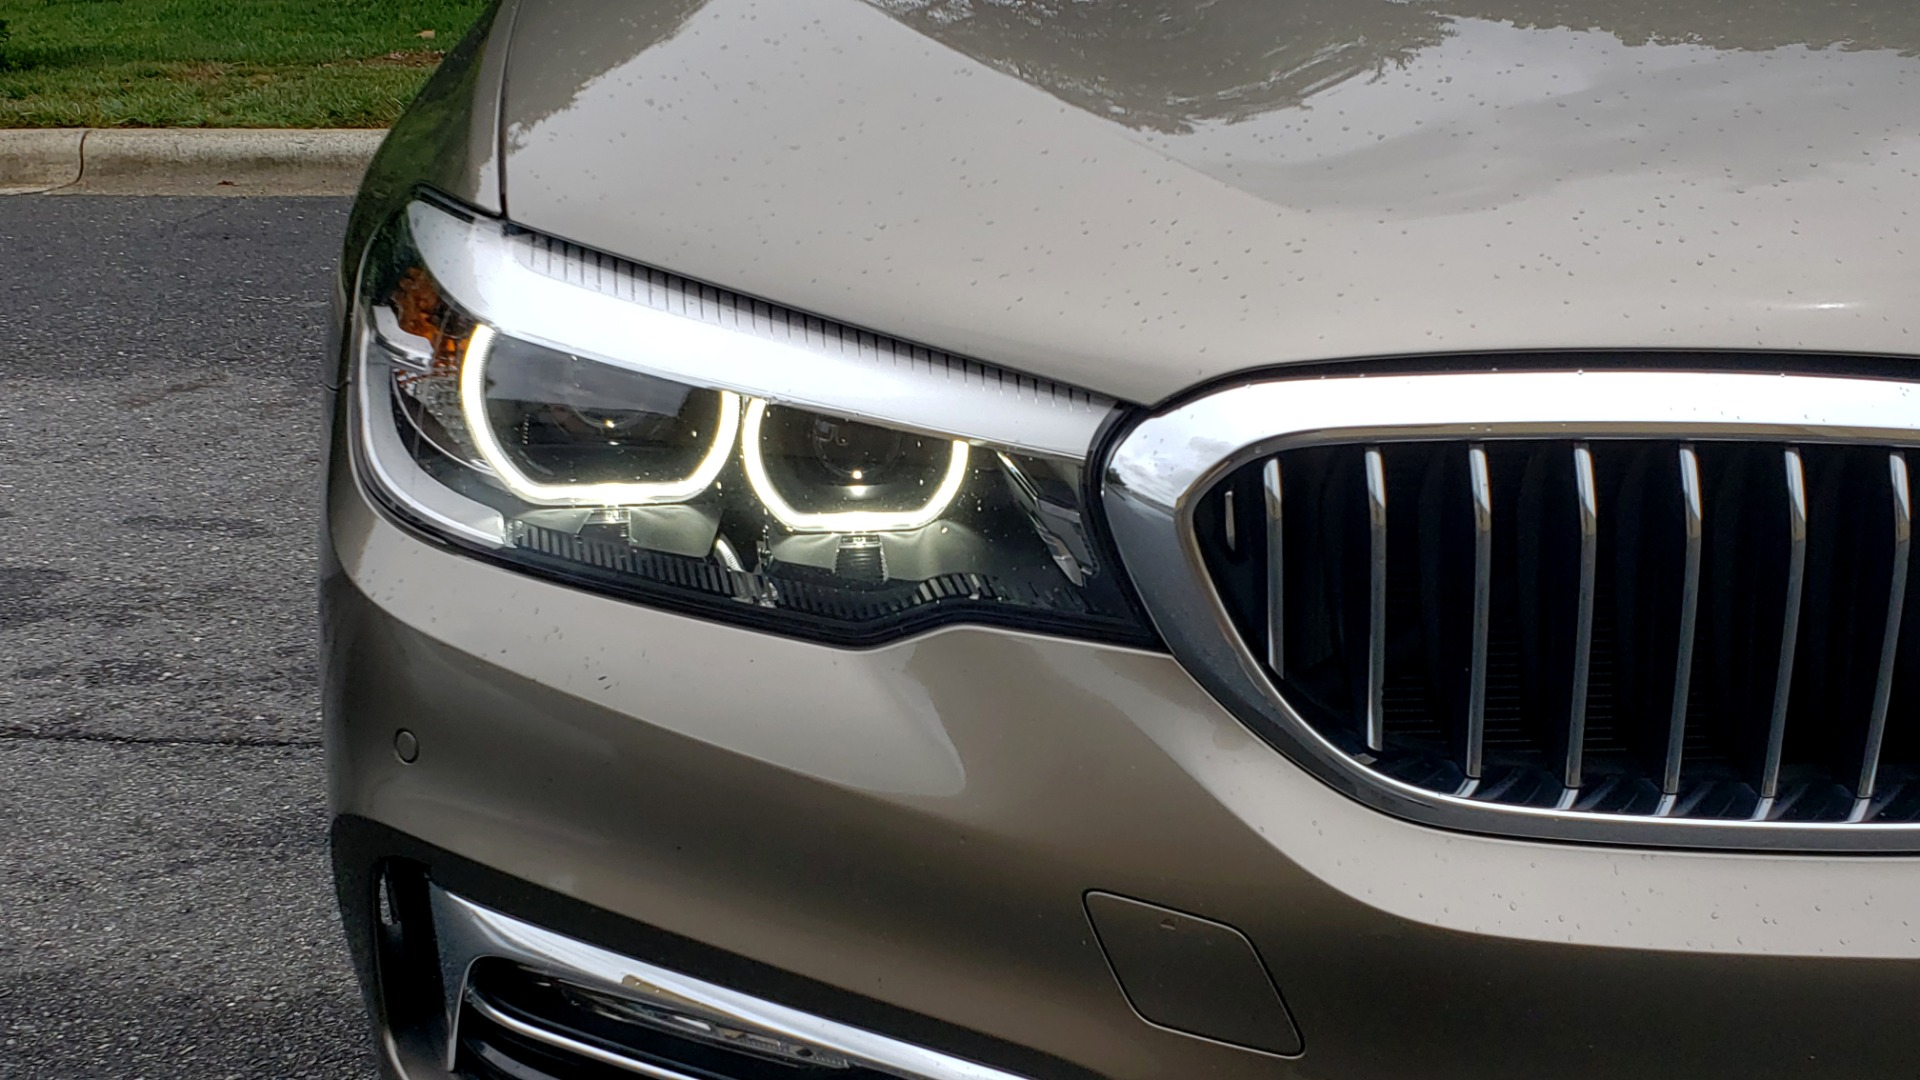 Used 2017 BMW 5 SERIES 530I PREMIUM / NAV / SUNROOF / DRVR ASST PLUS II / LUXURY for sale Sold at Formula Imports in Charlotte NC 28227 22